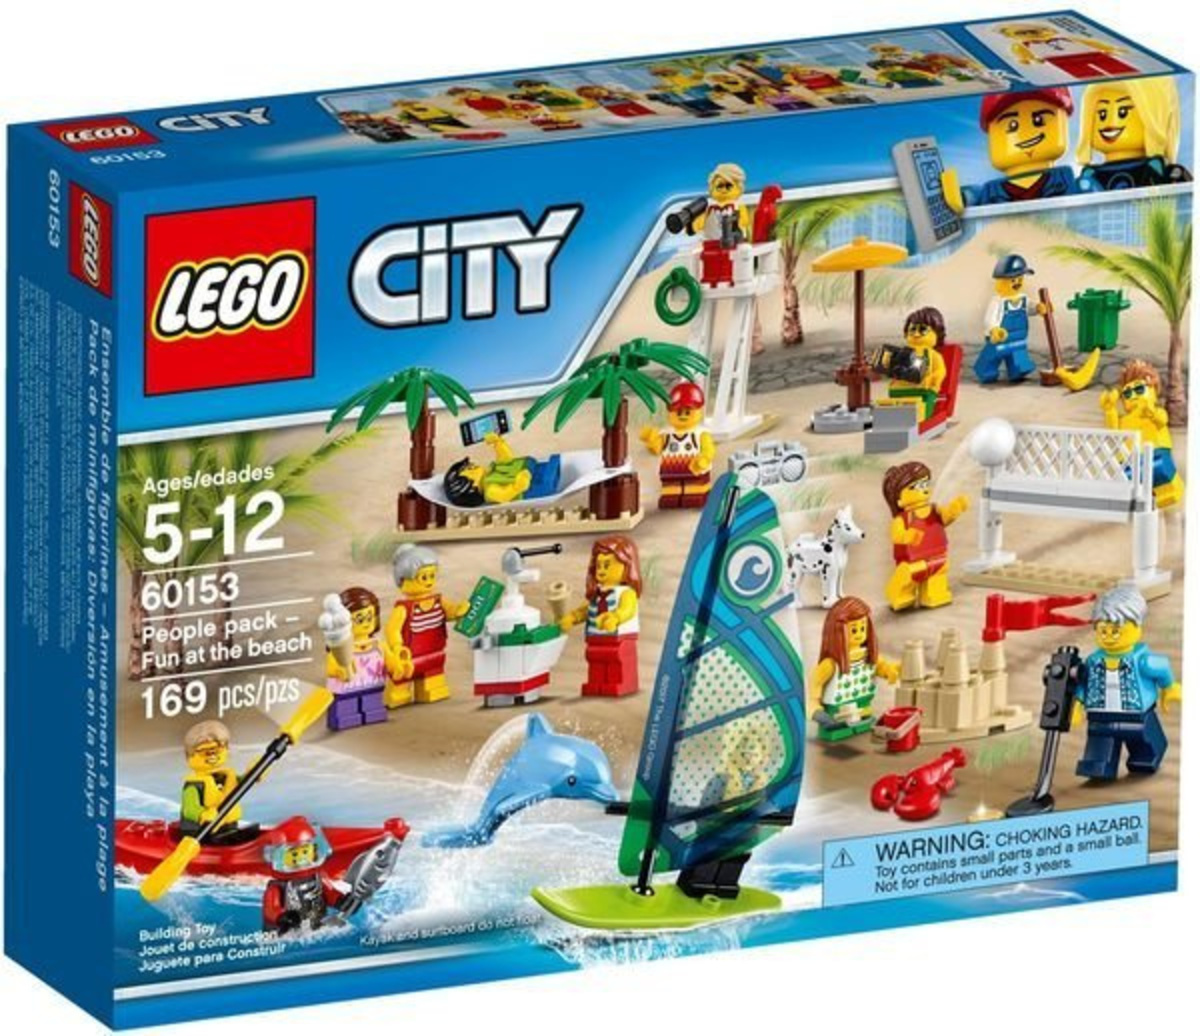 LEGO 60153 CITY Minifigures - People pack – Fun at the beach